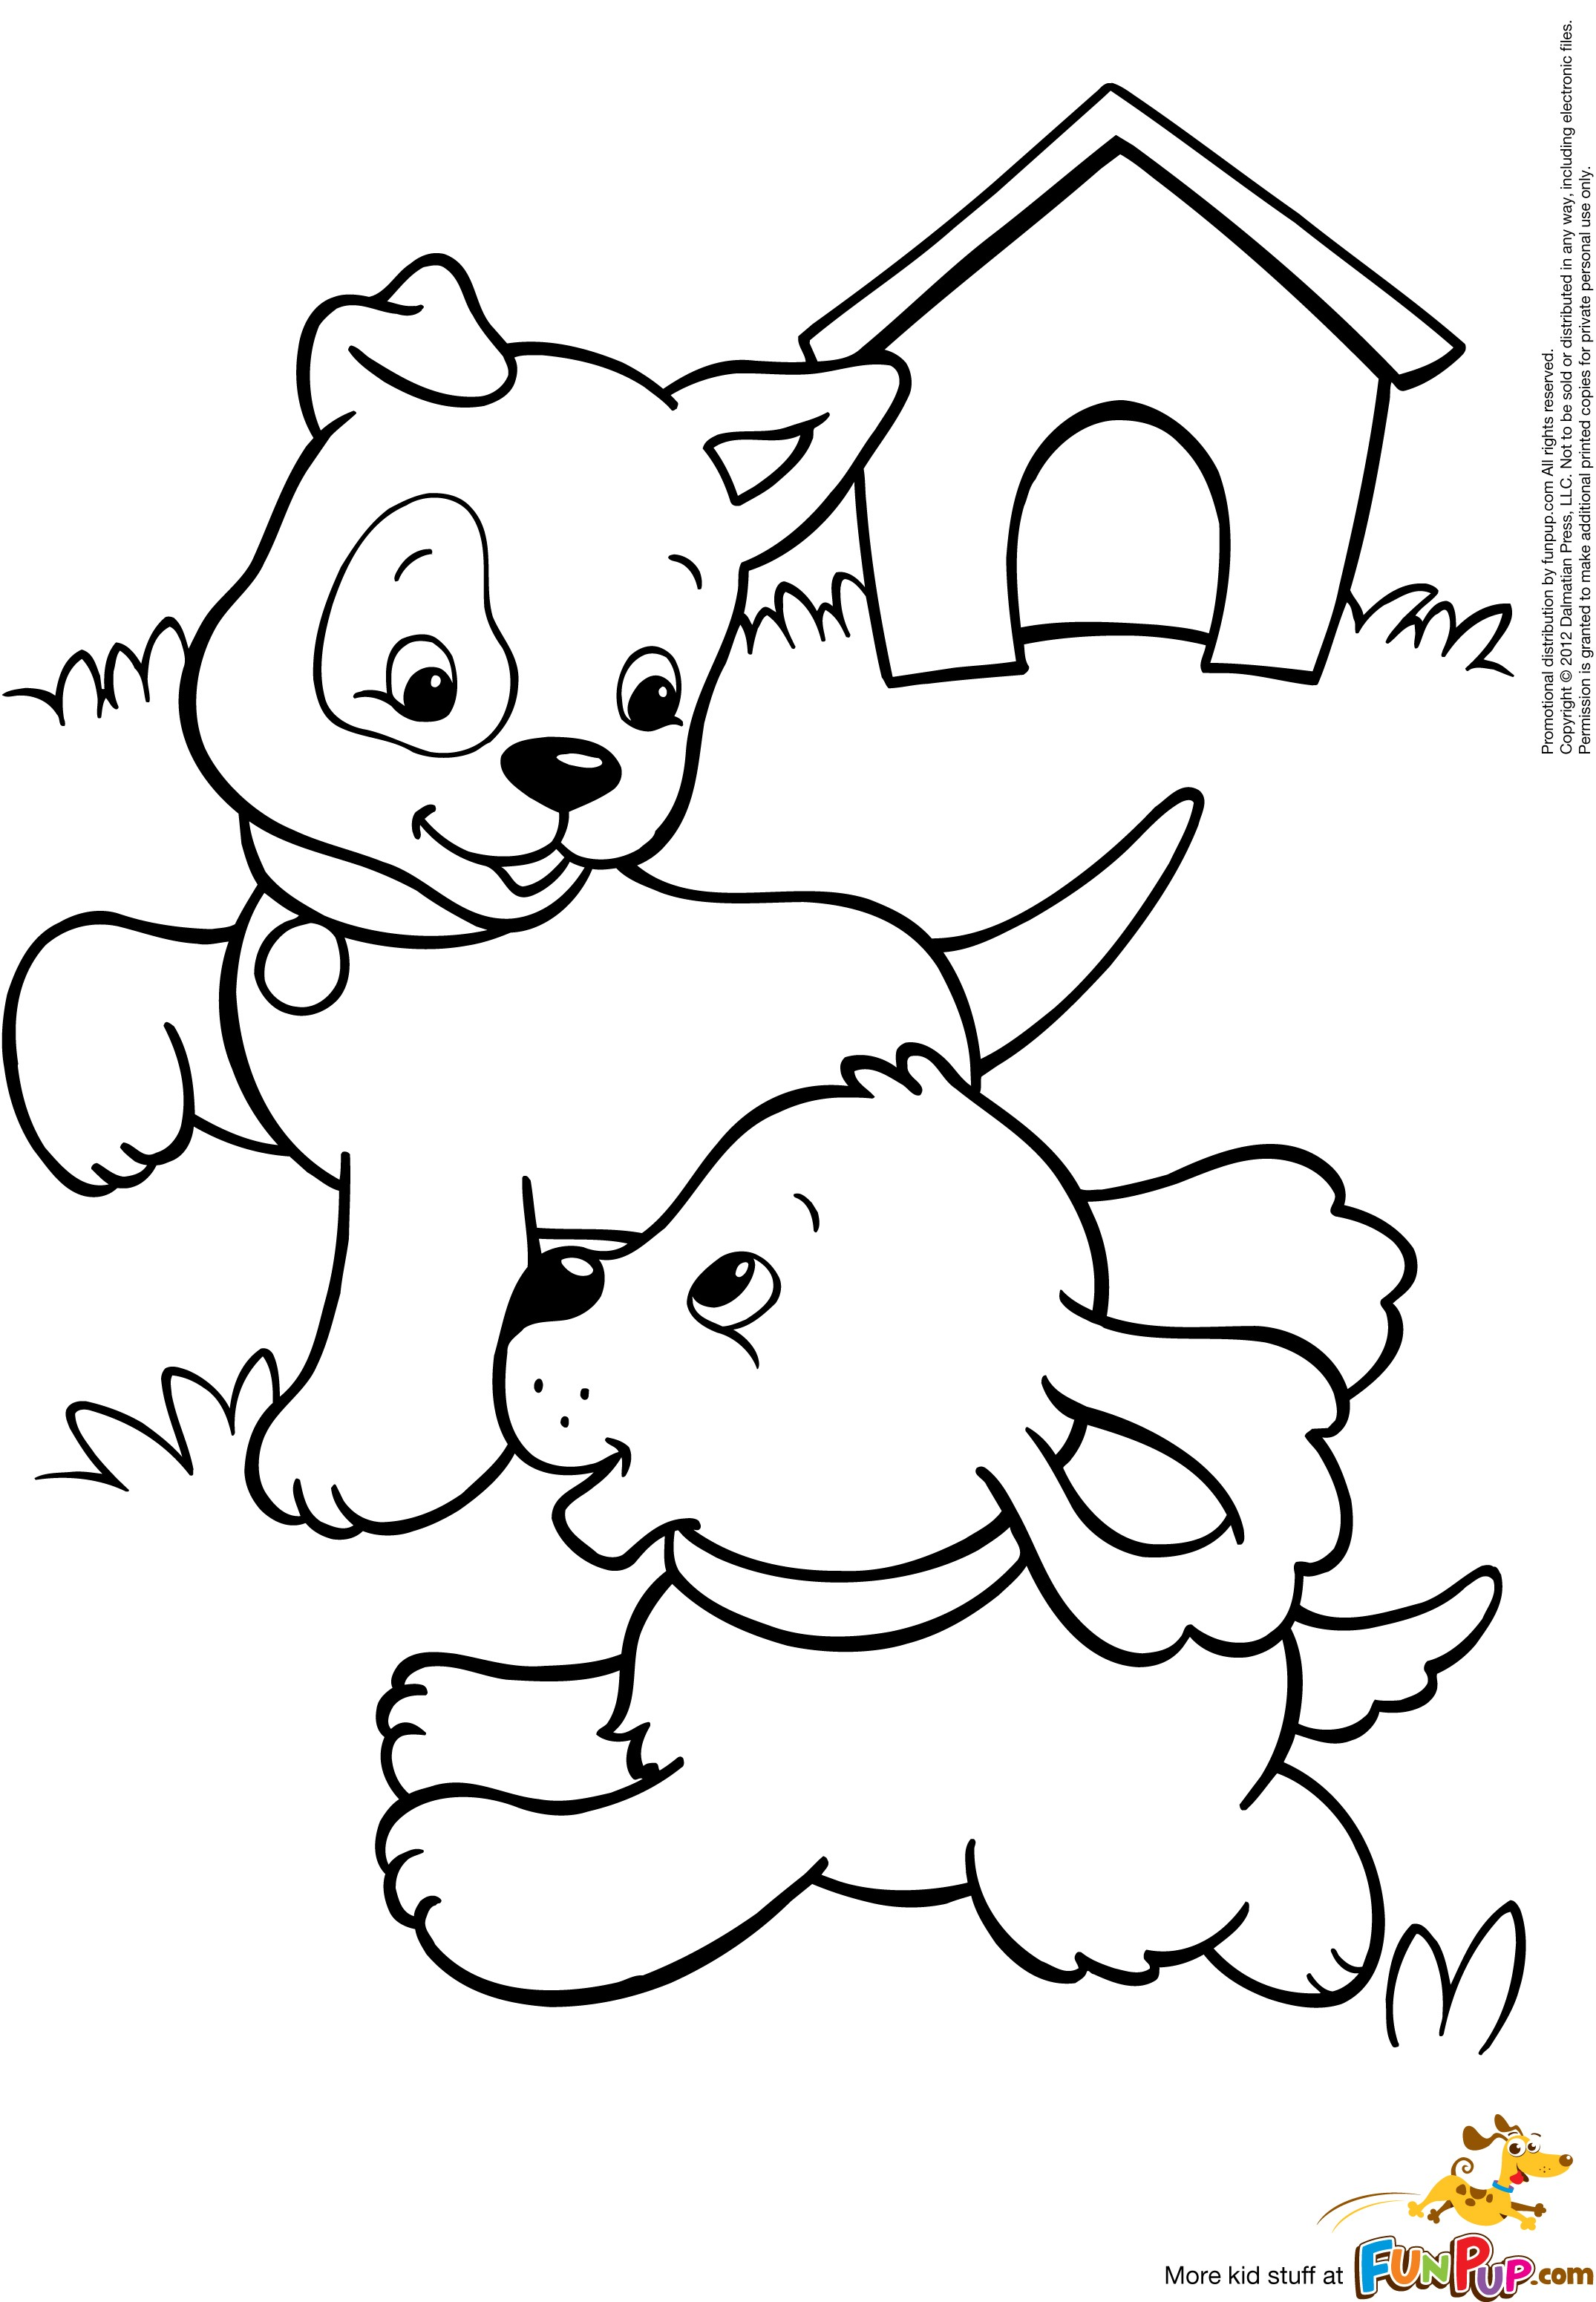 printable cute puppy coloring pages puppy coloring pages best coloring pages for kids cute printable puppy coloring pages